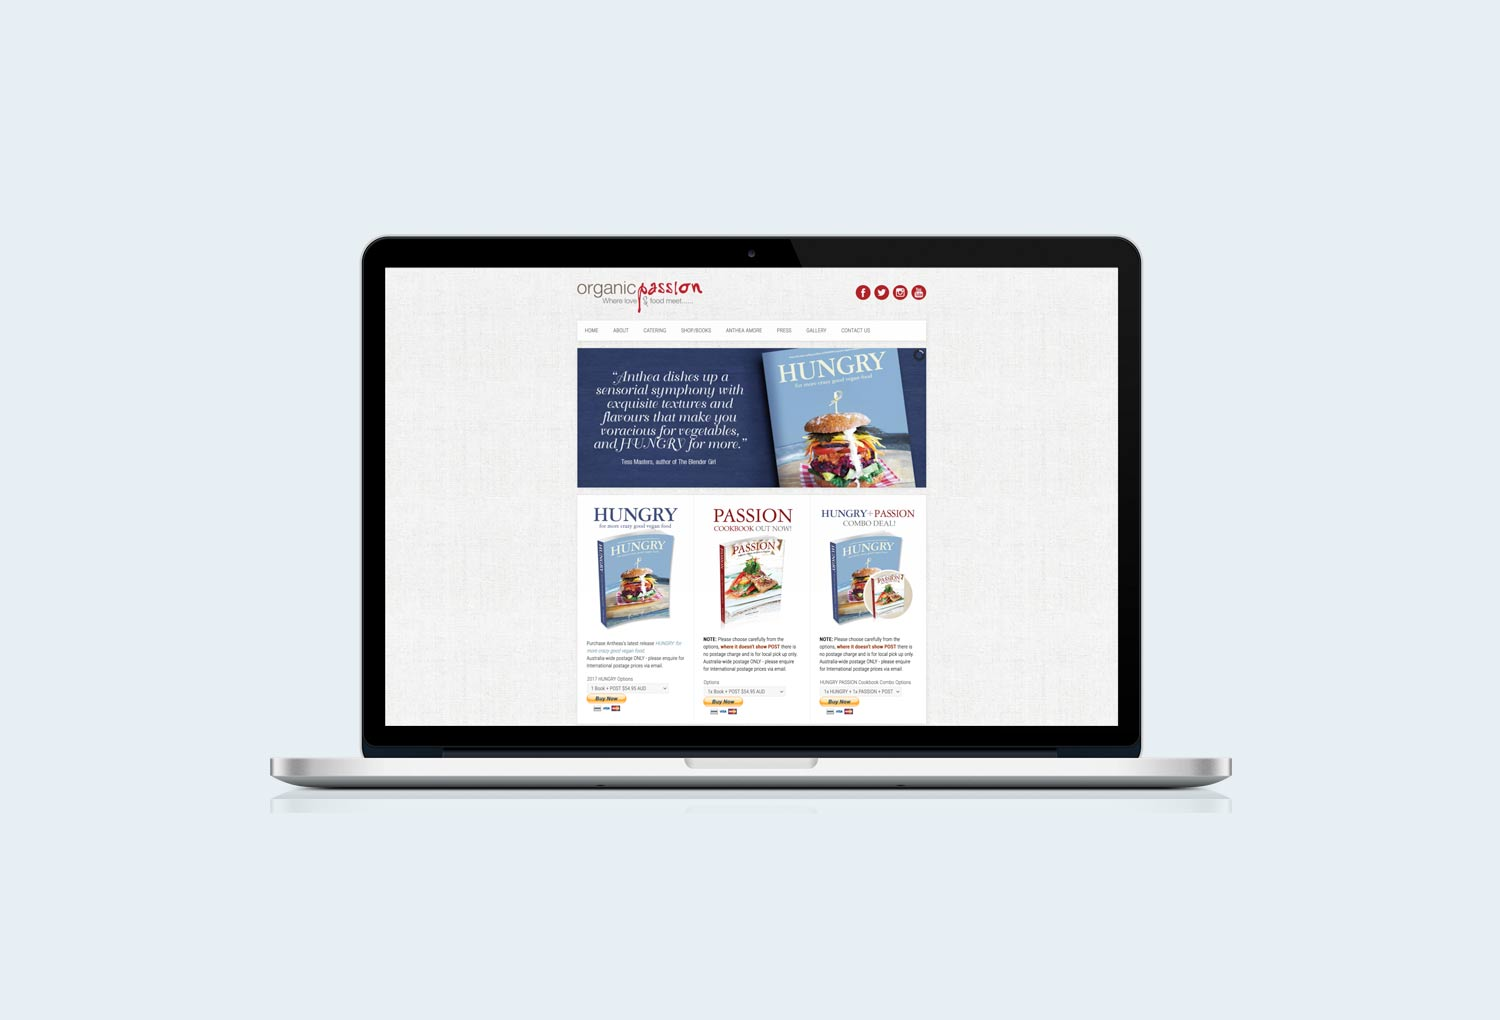 Organic Passion Catering Website Design By Mango Tree Media